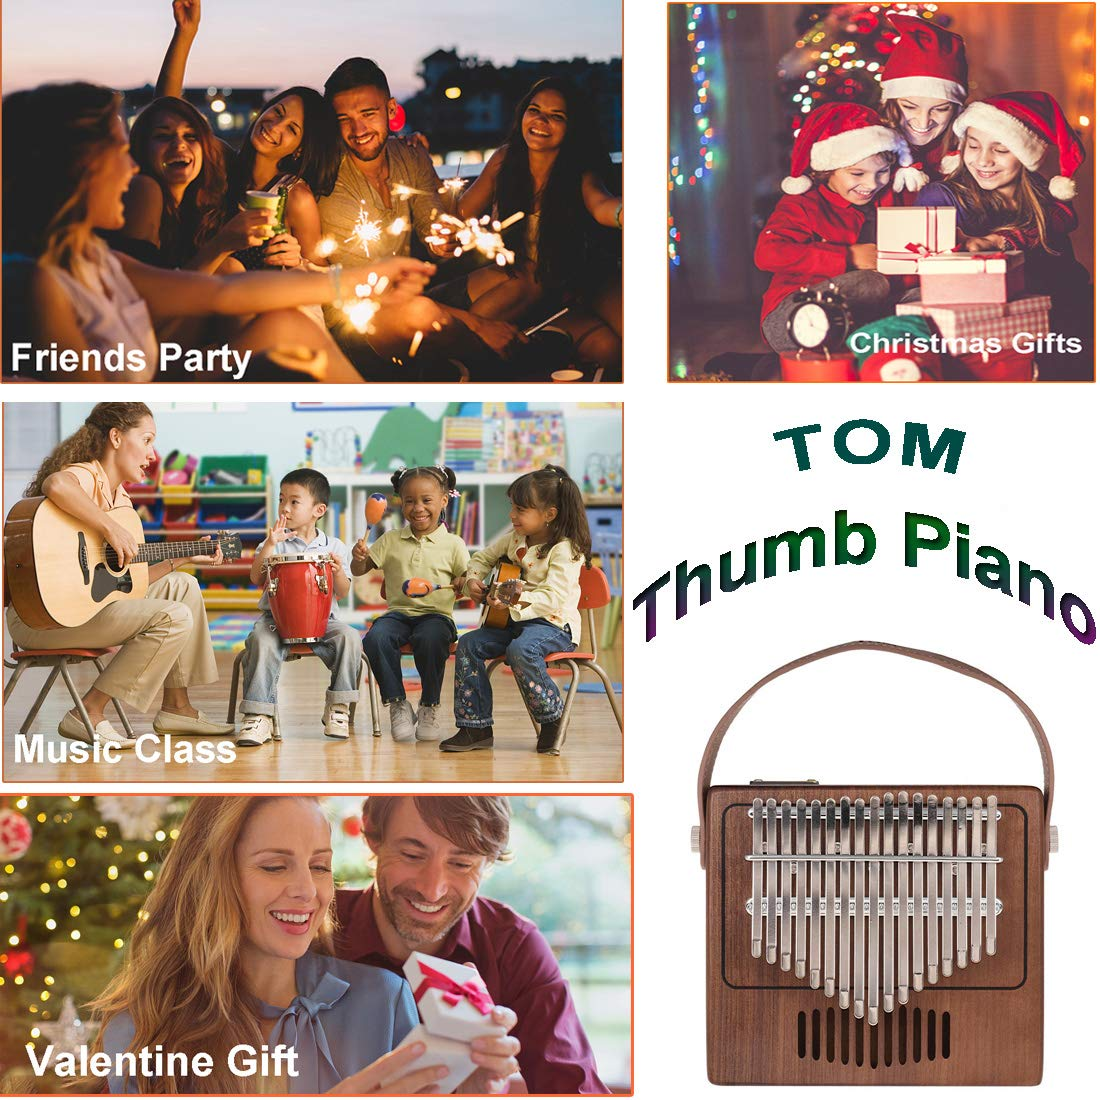 TOM Kalimba, 17 Key Finger Piano with EVA High-performance protective Case, Tune Hammer And Study Instruction 17 Tone Thumb Mbira for Kids Adult Beginners Professionals by TOM (Image #6)